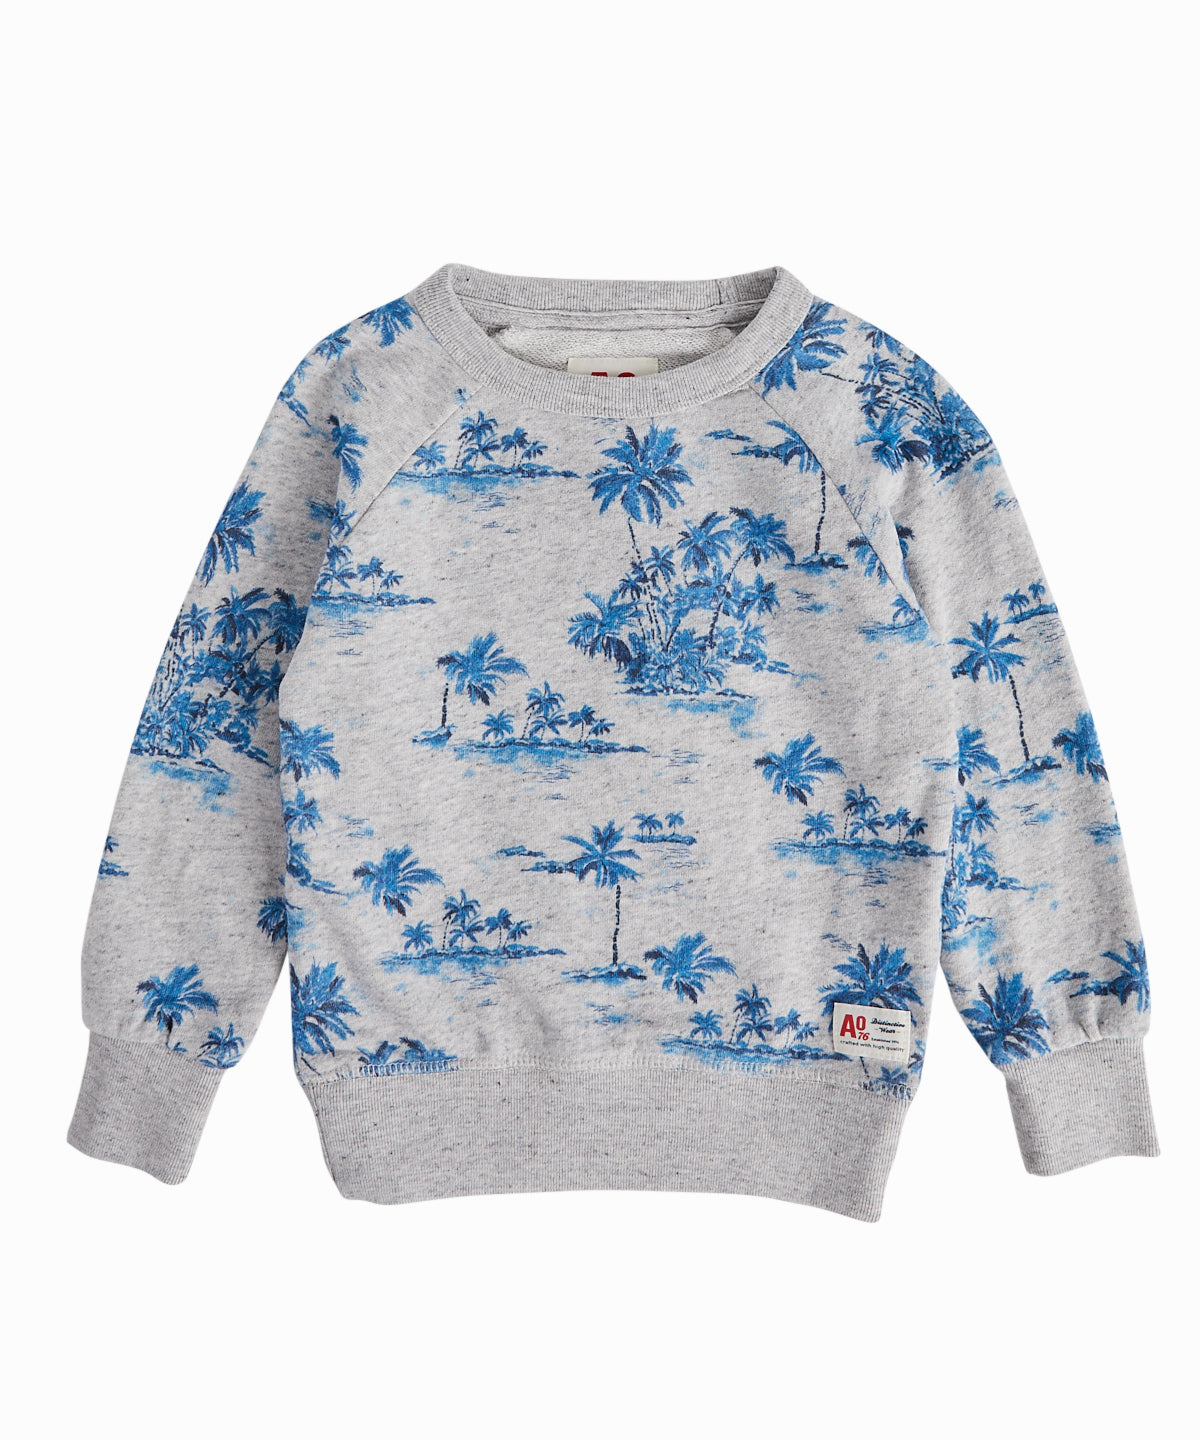 Leaves Print Sweatshirt